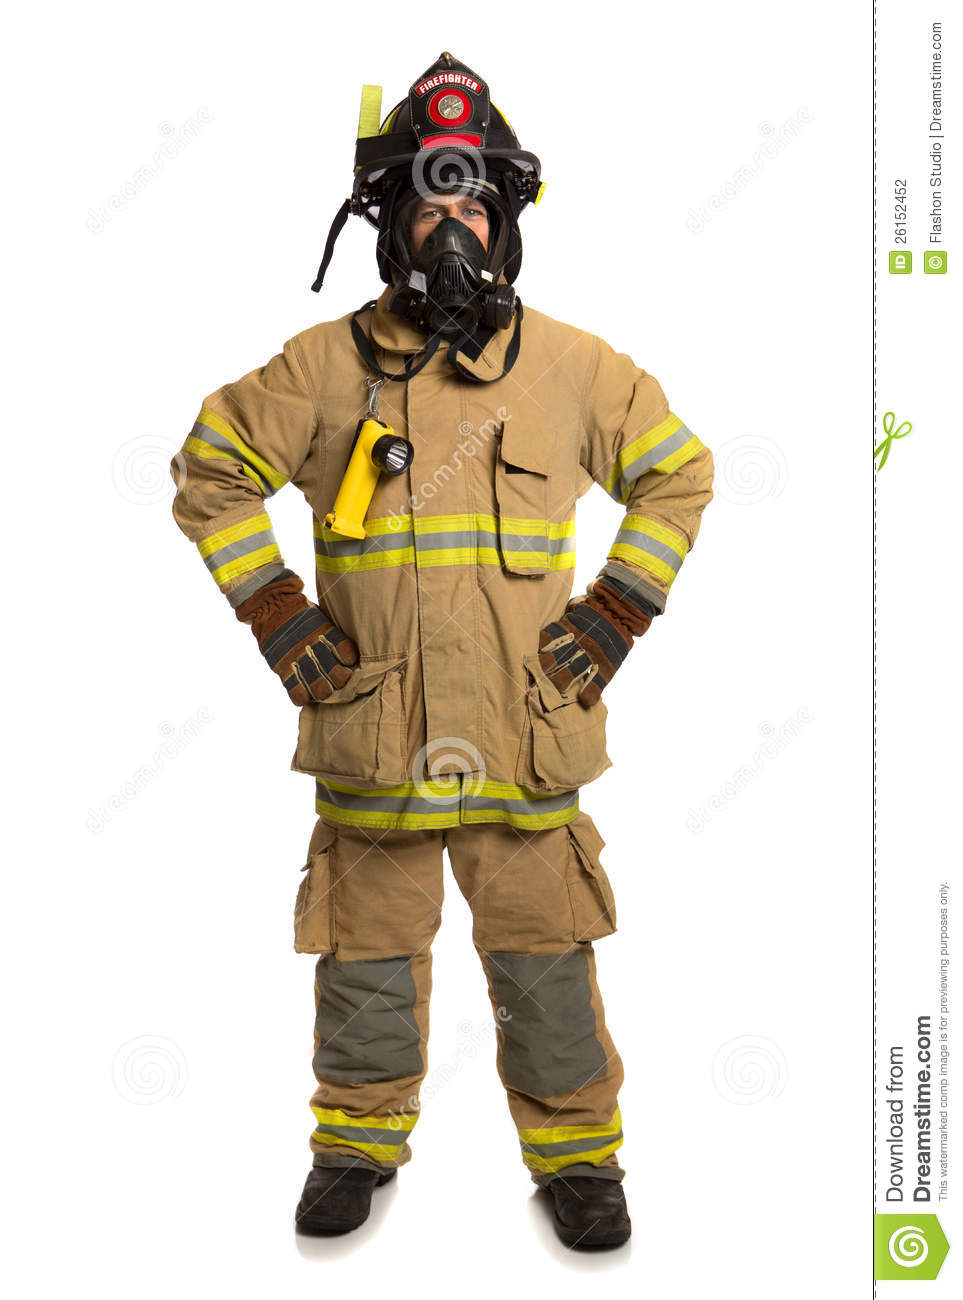 firefighter with mask and fully protective suit stock photography